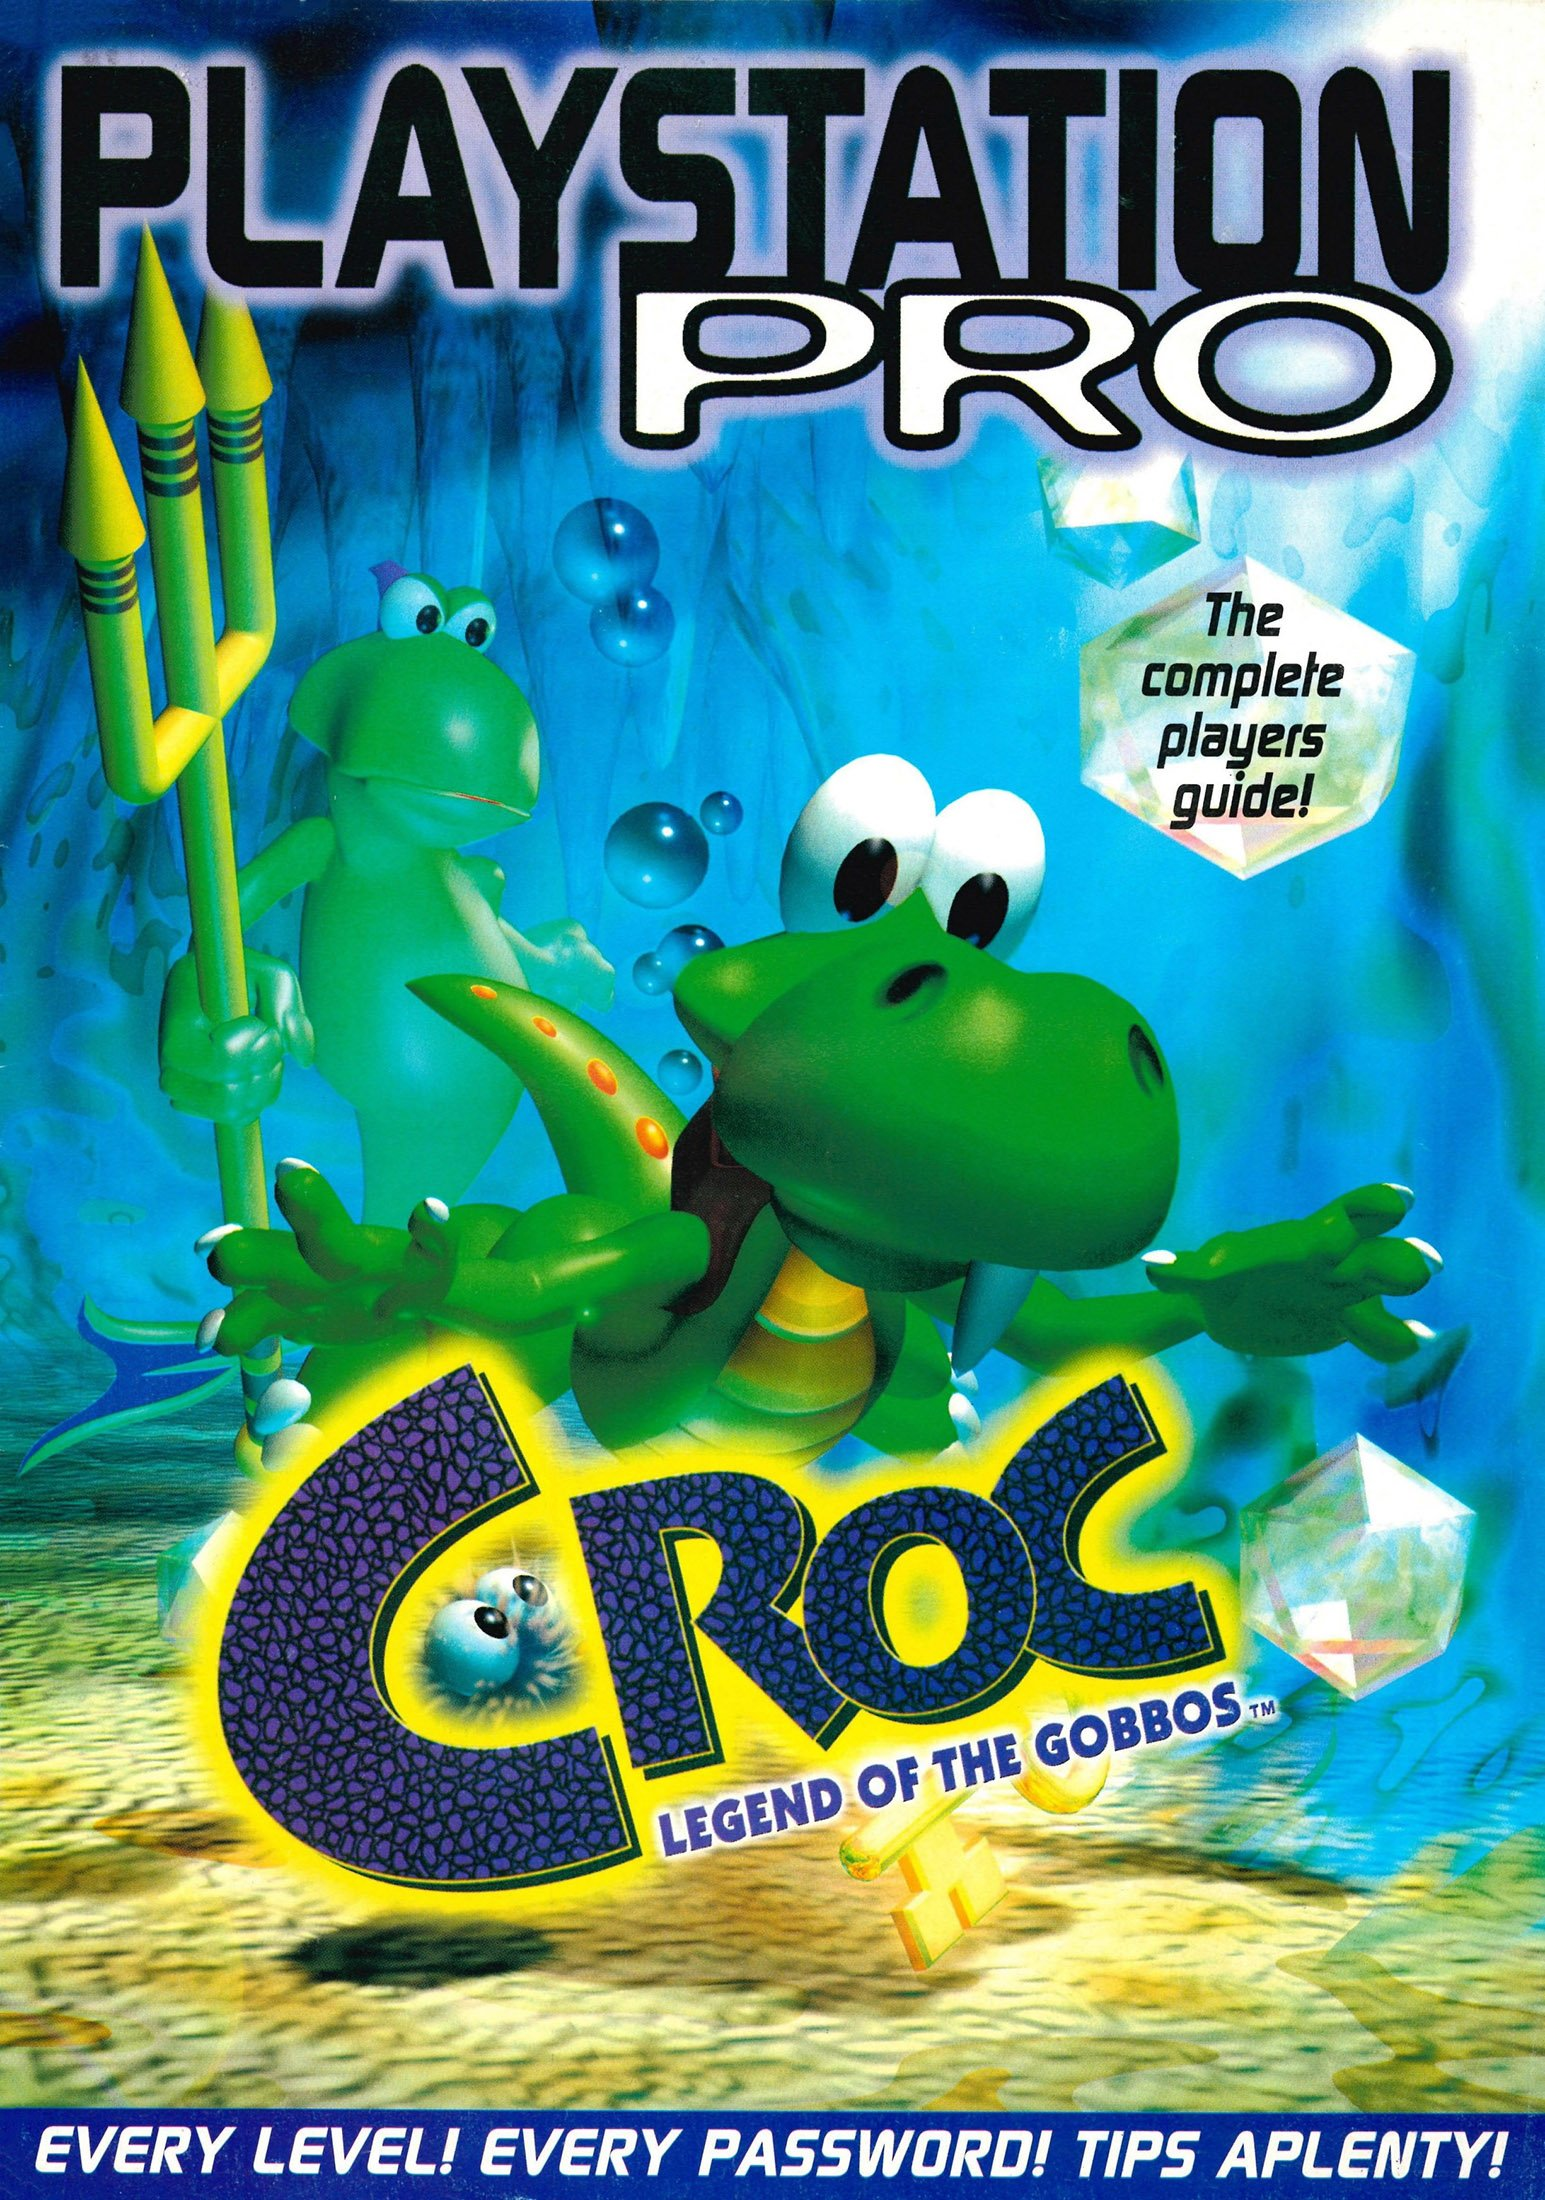 Croc: The Complete Player's Guide (Issue 15 supplement) (Christmas 1997)